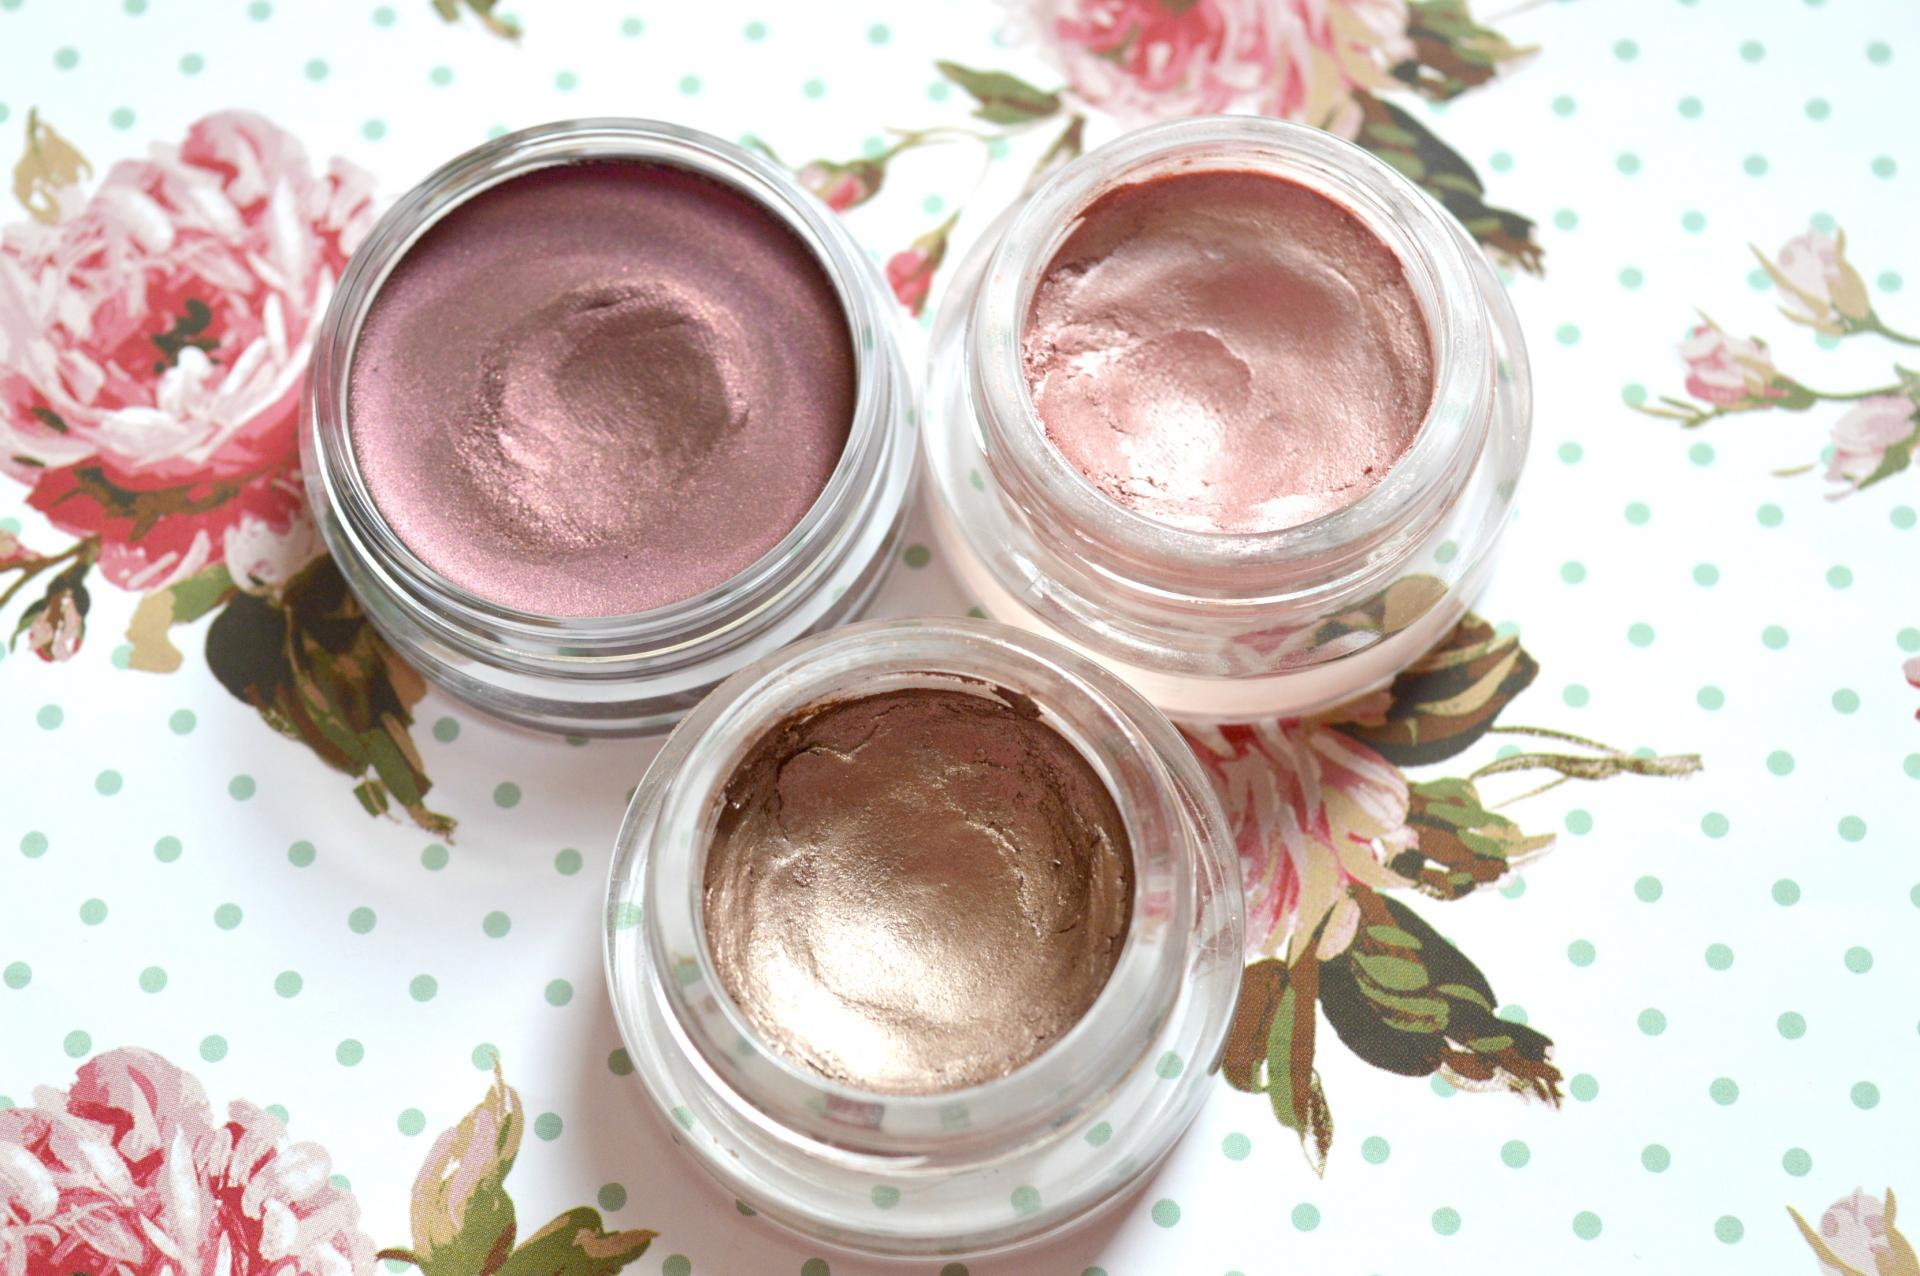 3 Excellent Cream Eyeshadows Worth Checking Out | Bourjois 24H Color Edition Cream to Powder Eyeshadow in Prune Nocturne, Maybelline Color Tattoo in Pink Gold and Maybelline Color Tattoo in On and On Bronze